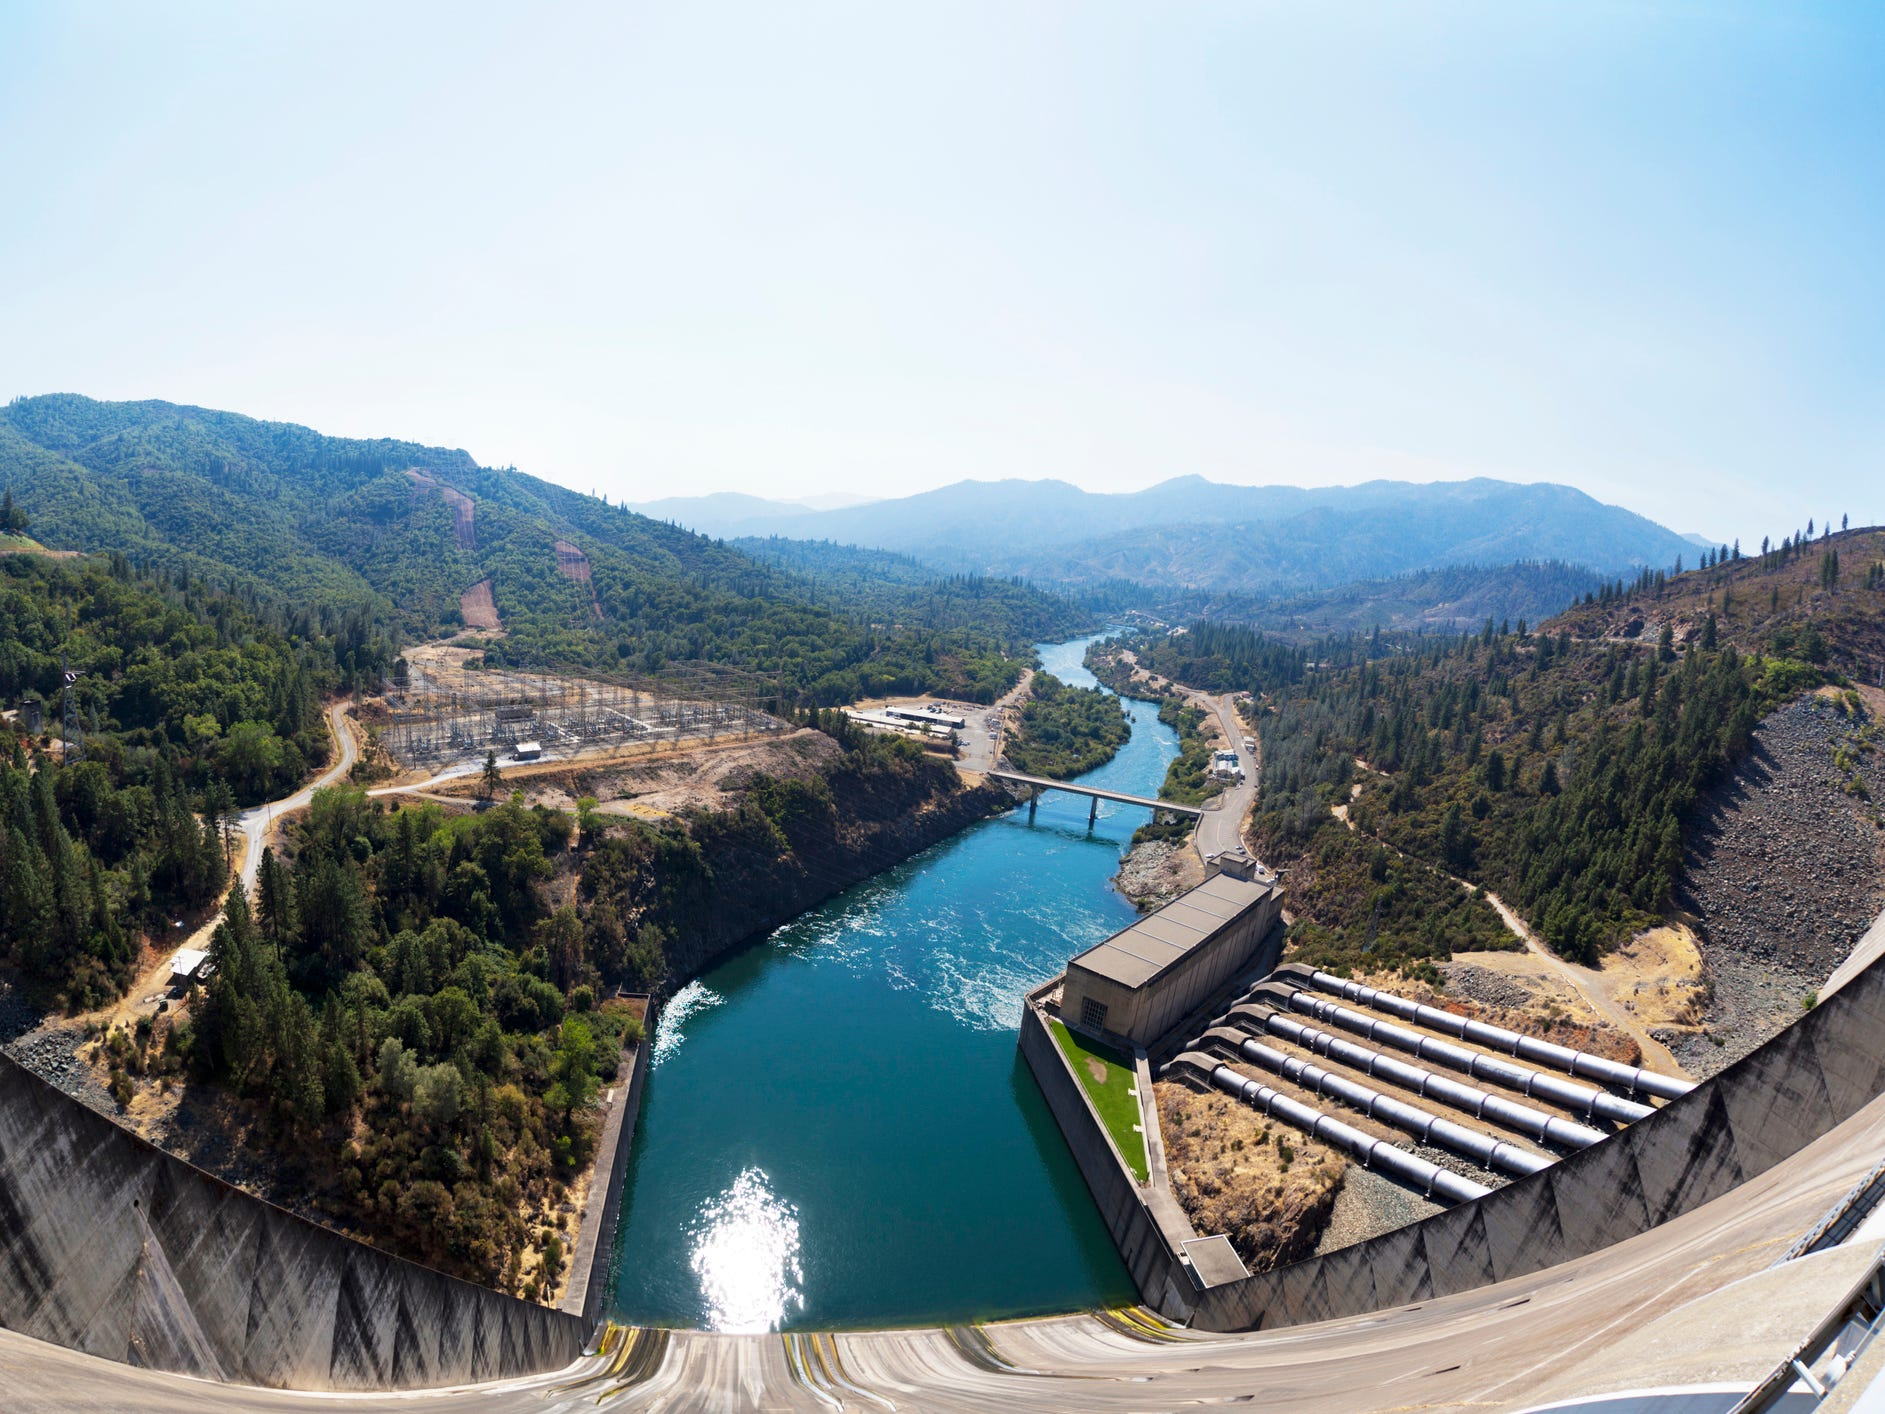 Shasta Dam in California.